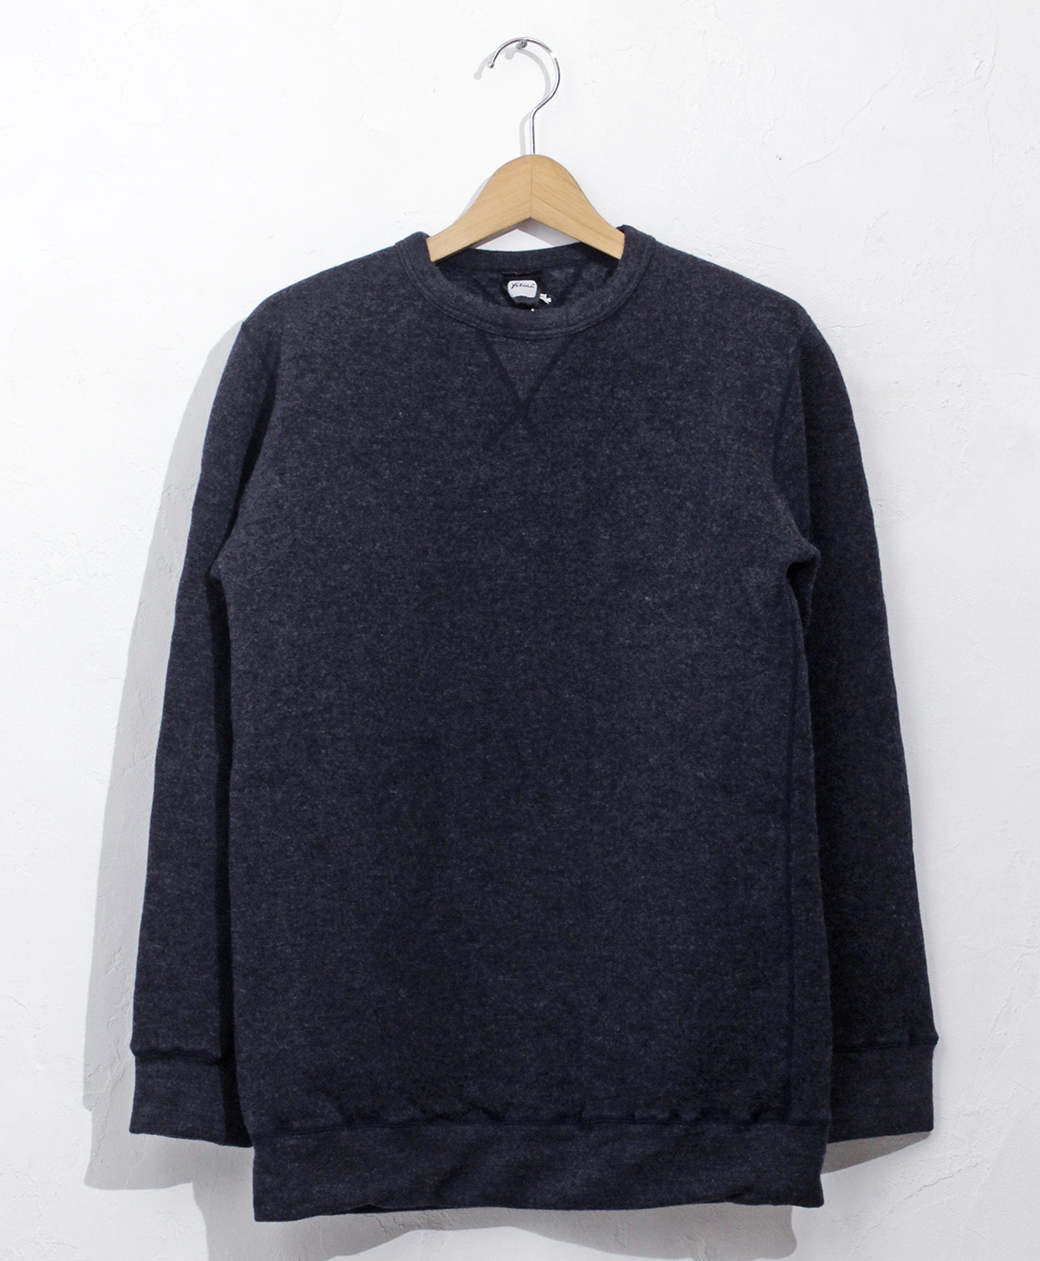 yetina sweat shirt(Iron Navy)